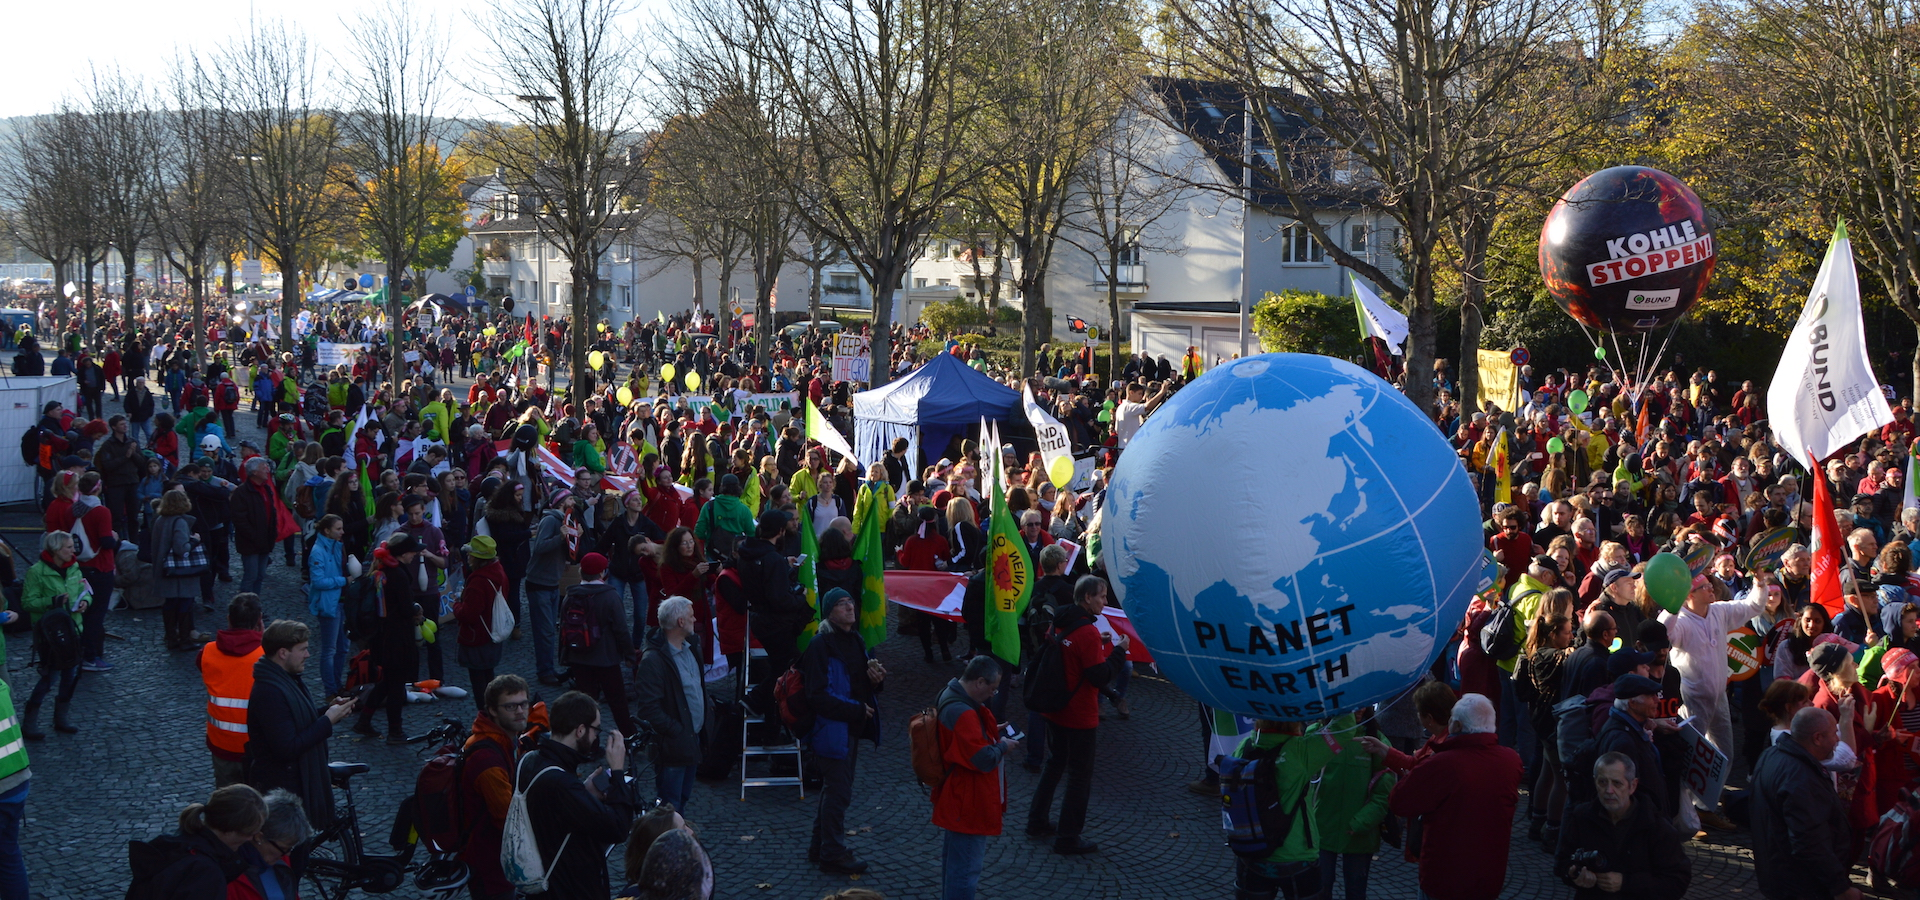 Photo by Spielvogel, https://commons.wikimedia.org/wiki/File:2017_COP_23_demo_in_Bonn._Spielvogel_7.jpg